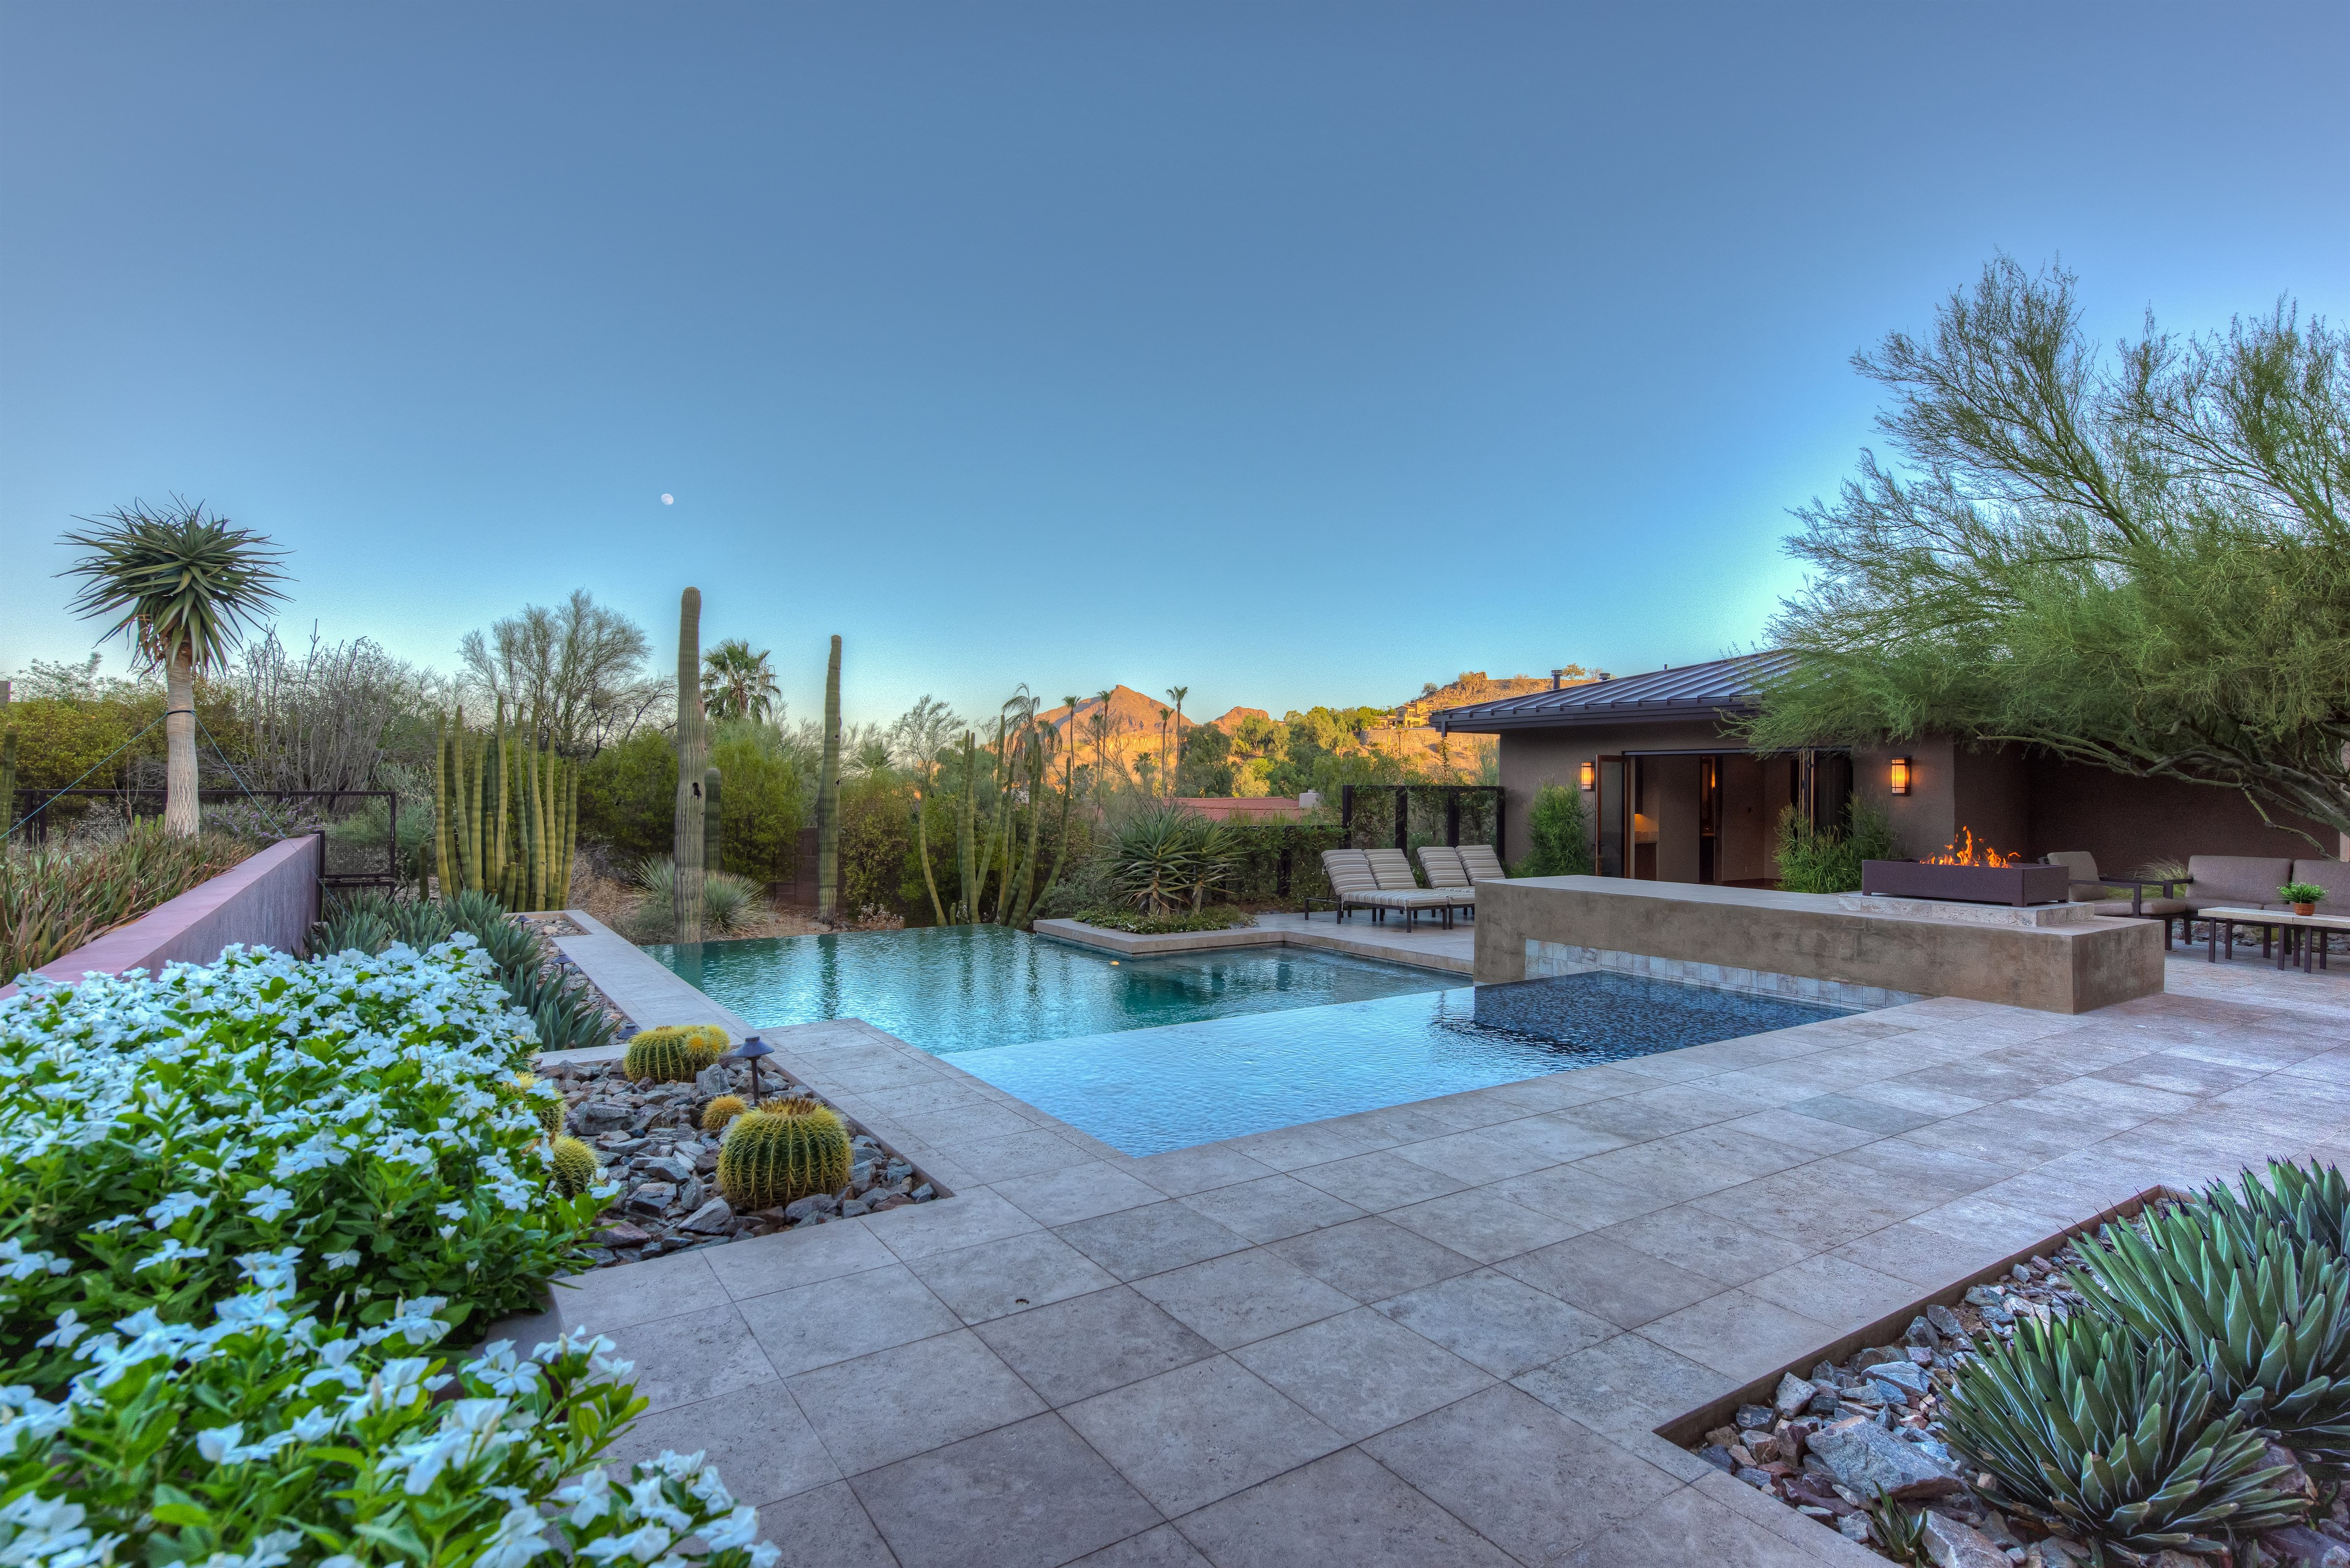 043_Pool-and-Guest-House